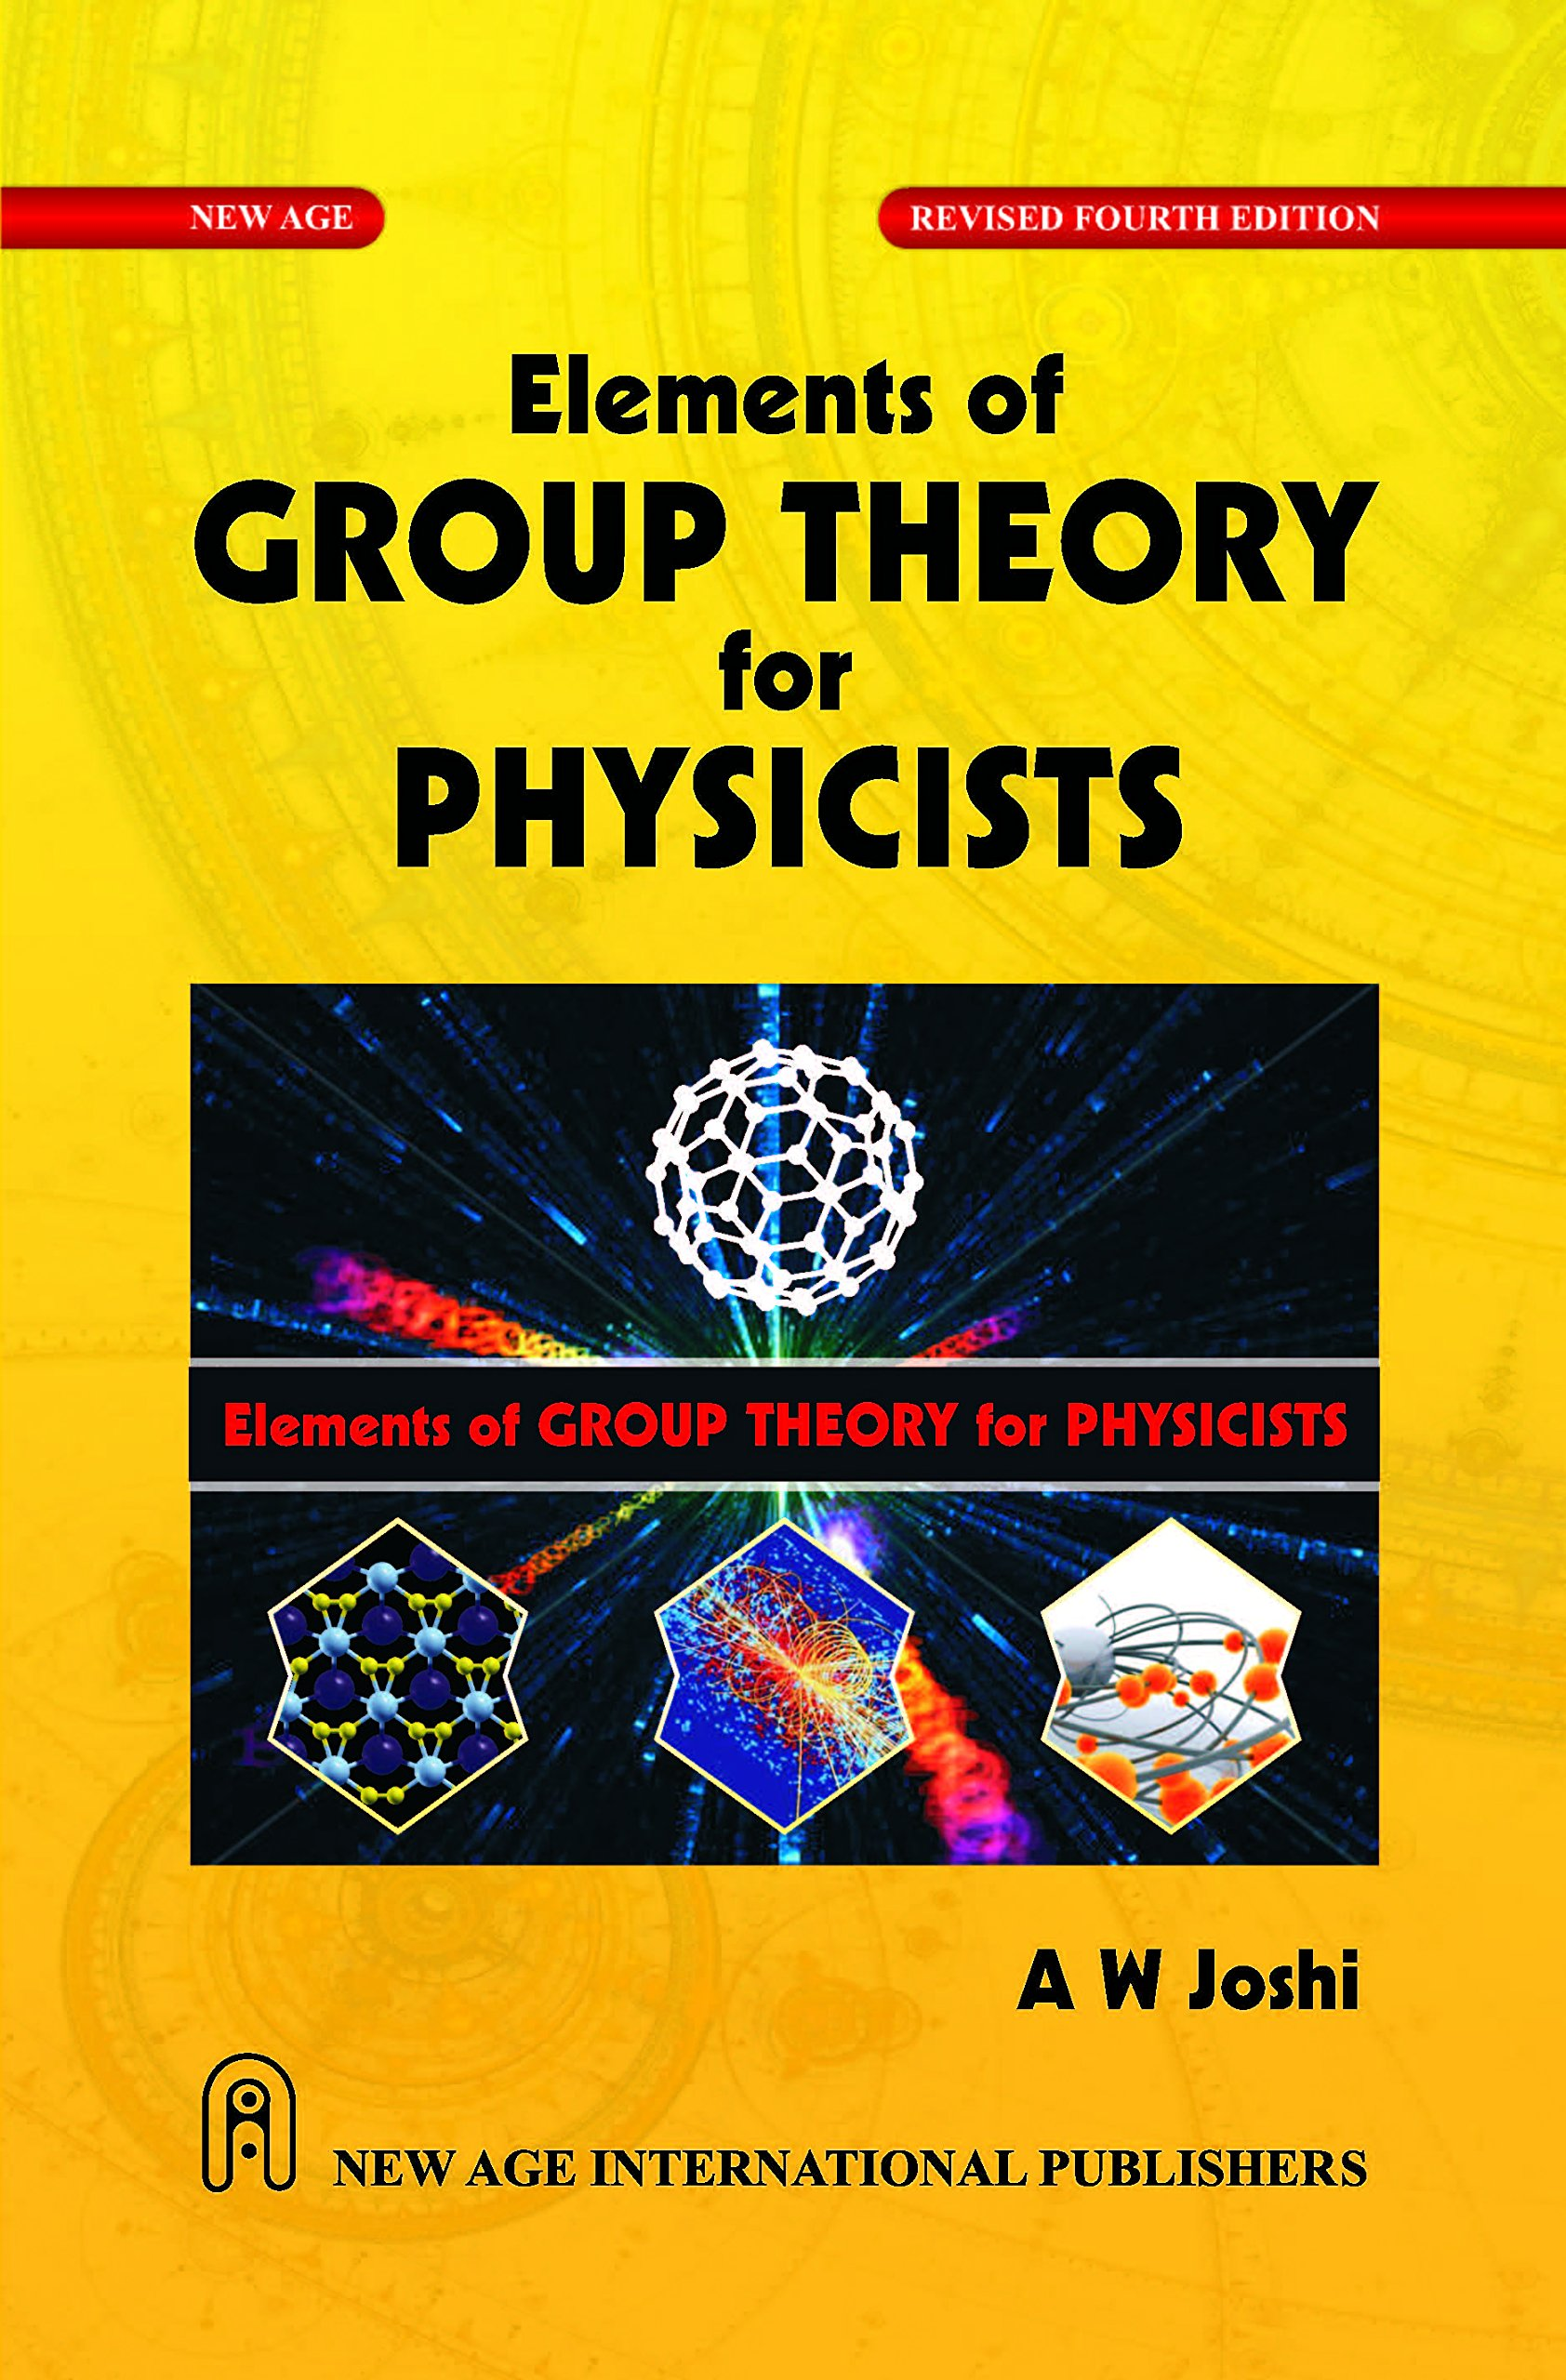 group theory in a nutshell for physicists pdf free